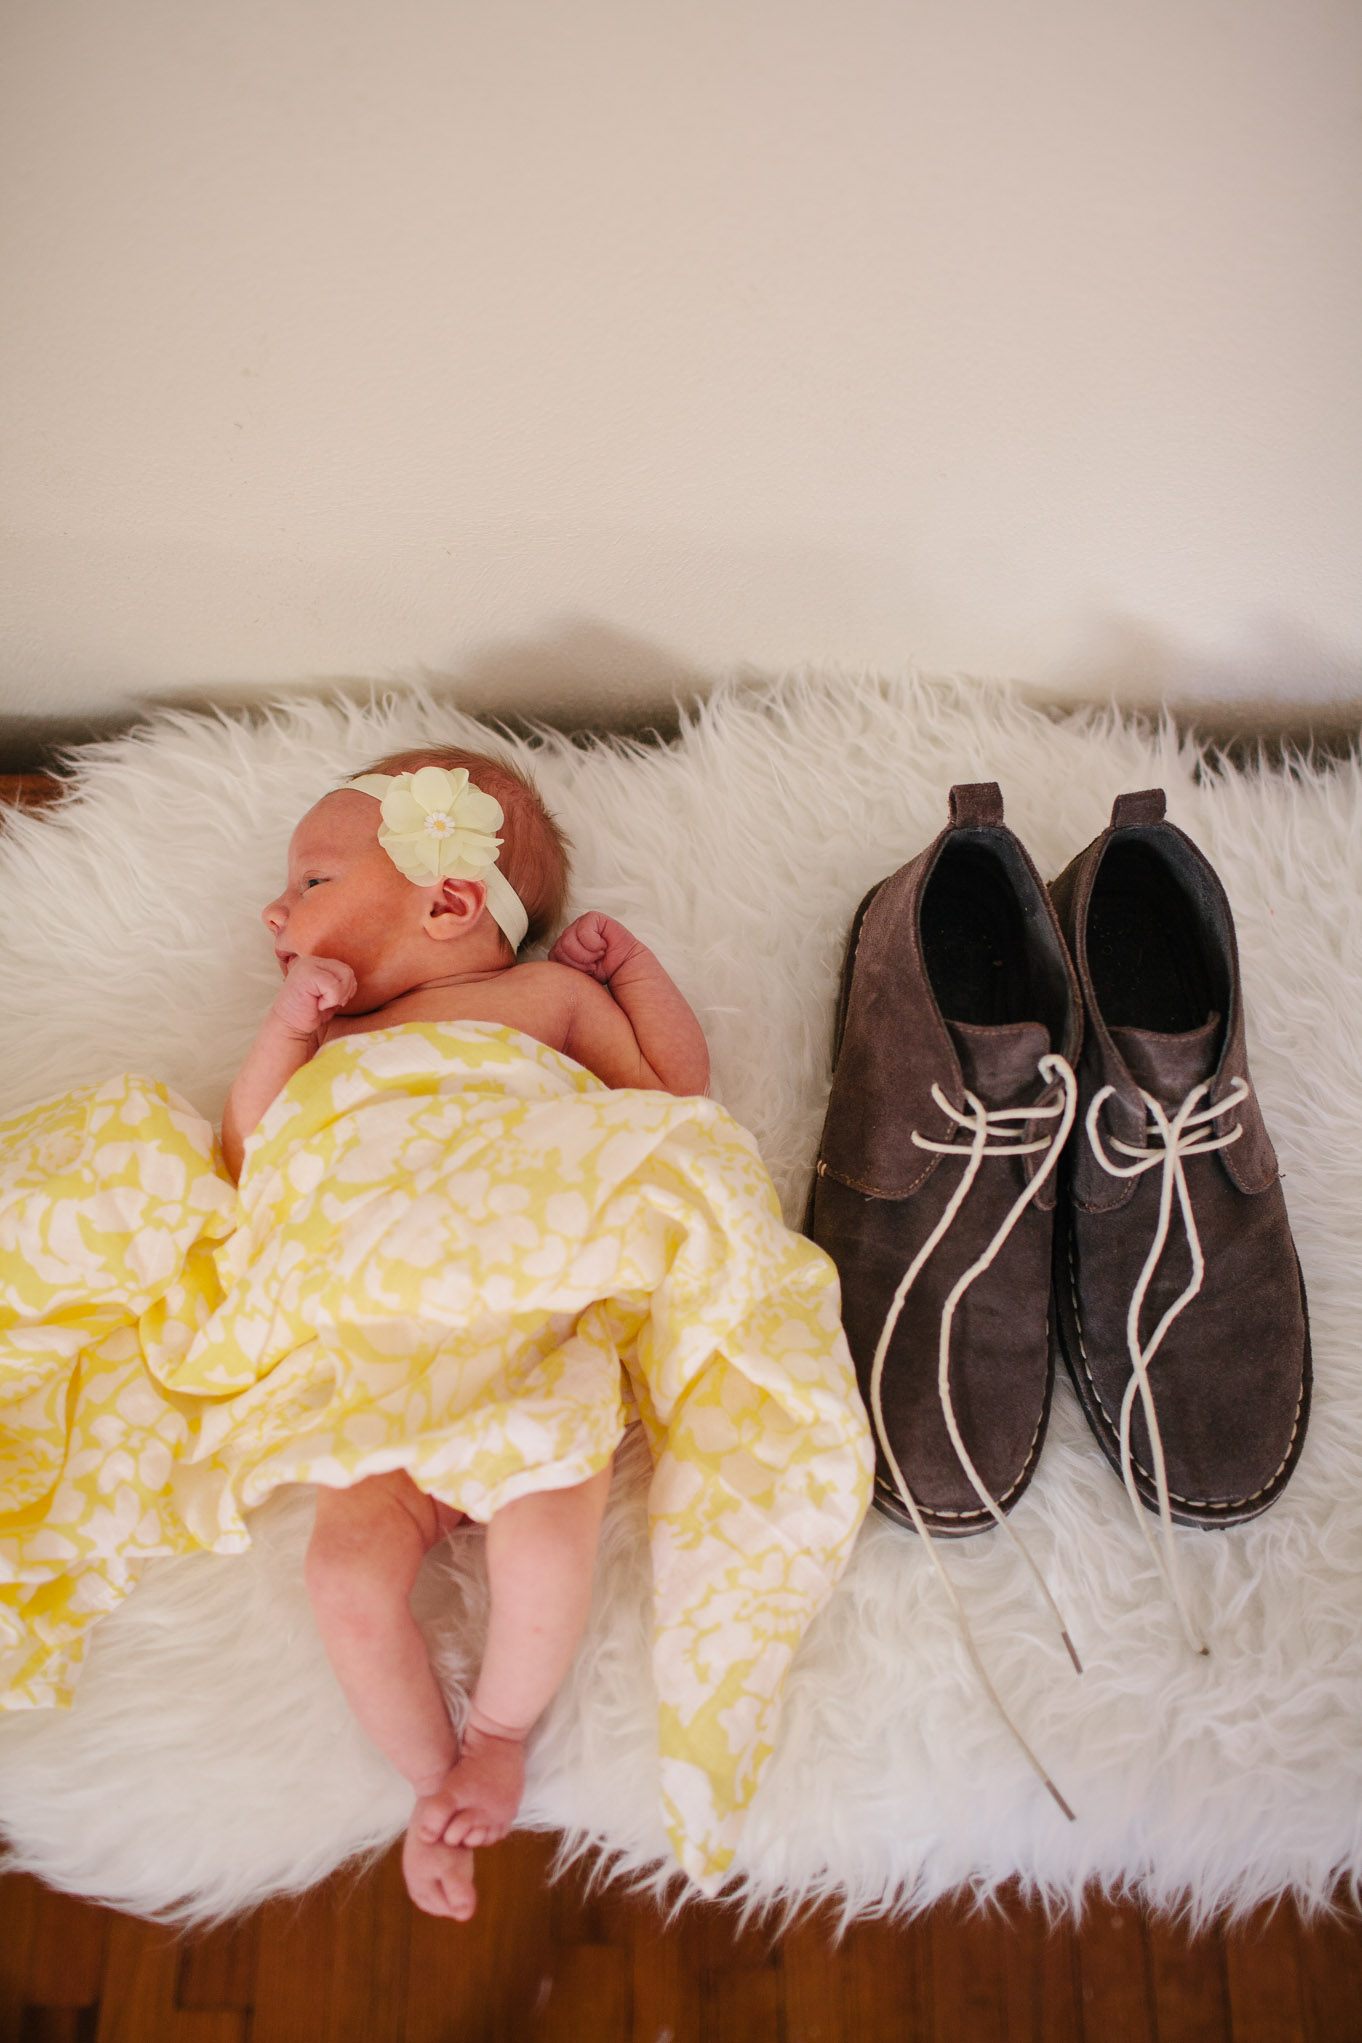 bowman_newborn_blog_tierney_cyanne_photography_2753.jpg